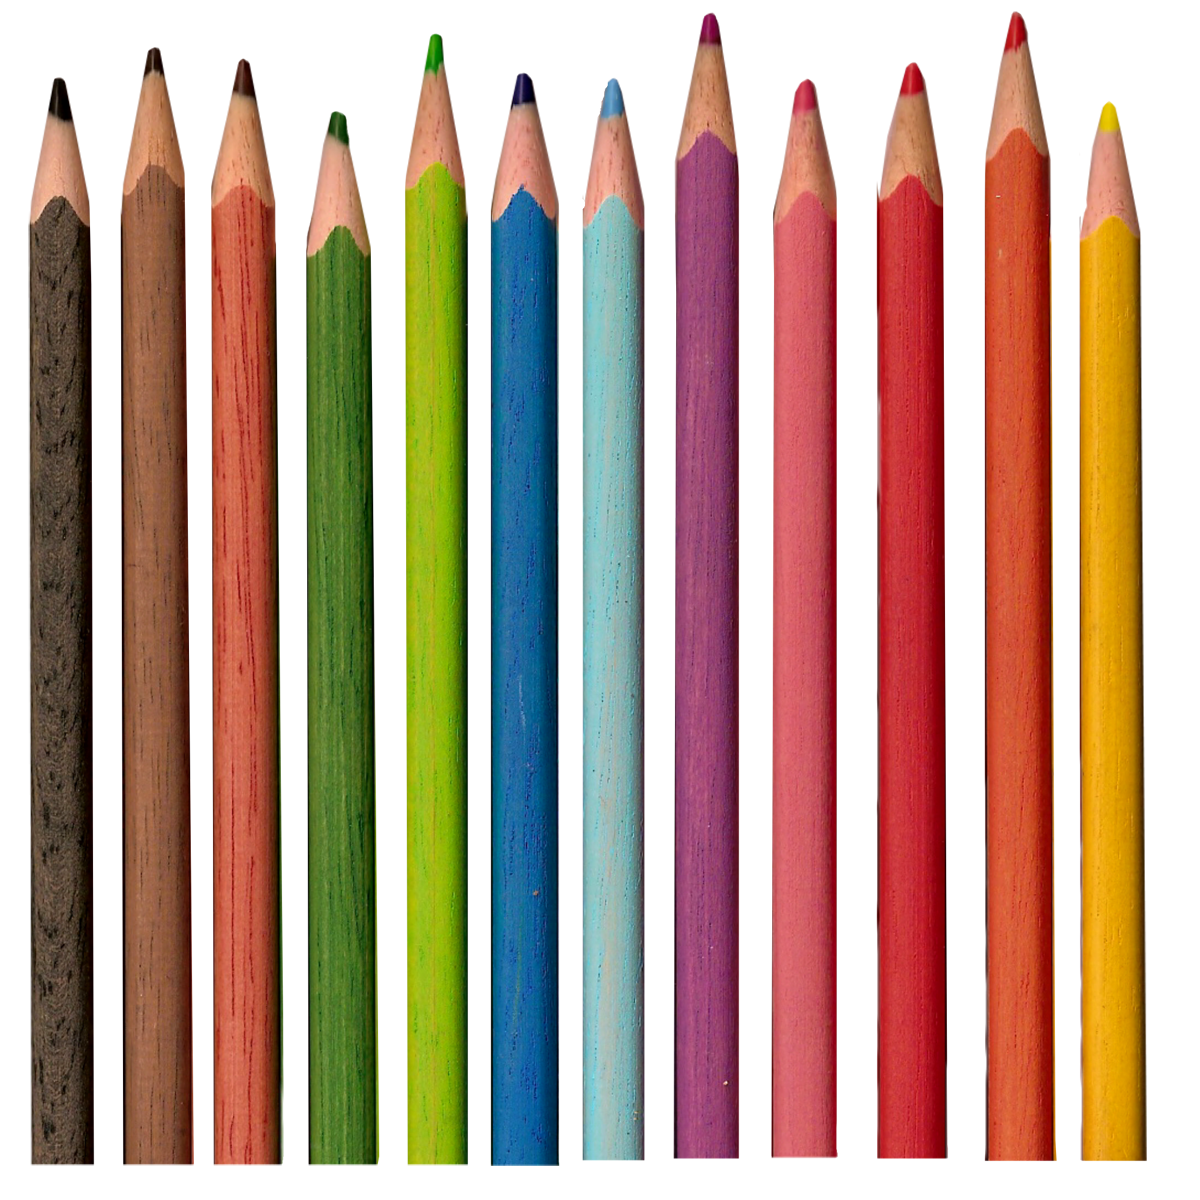 Free Download Pencil Png Images image #673